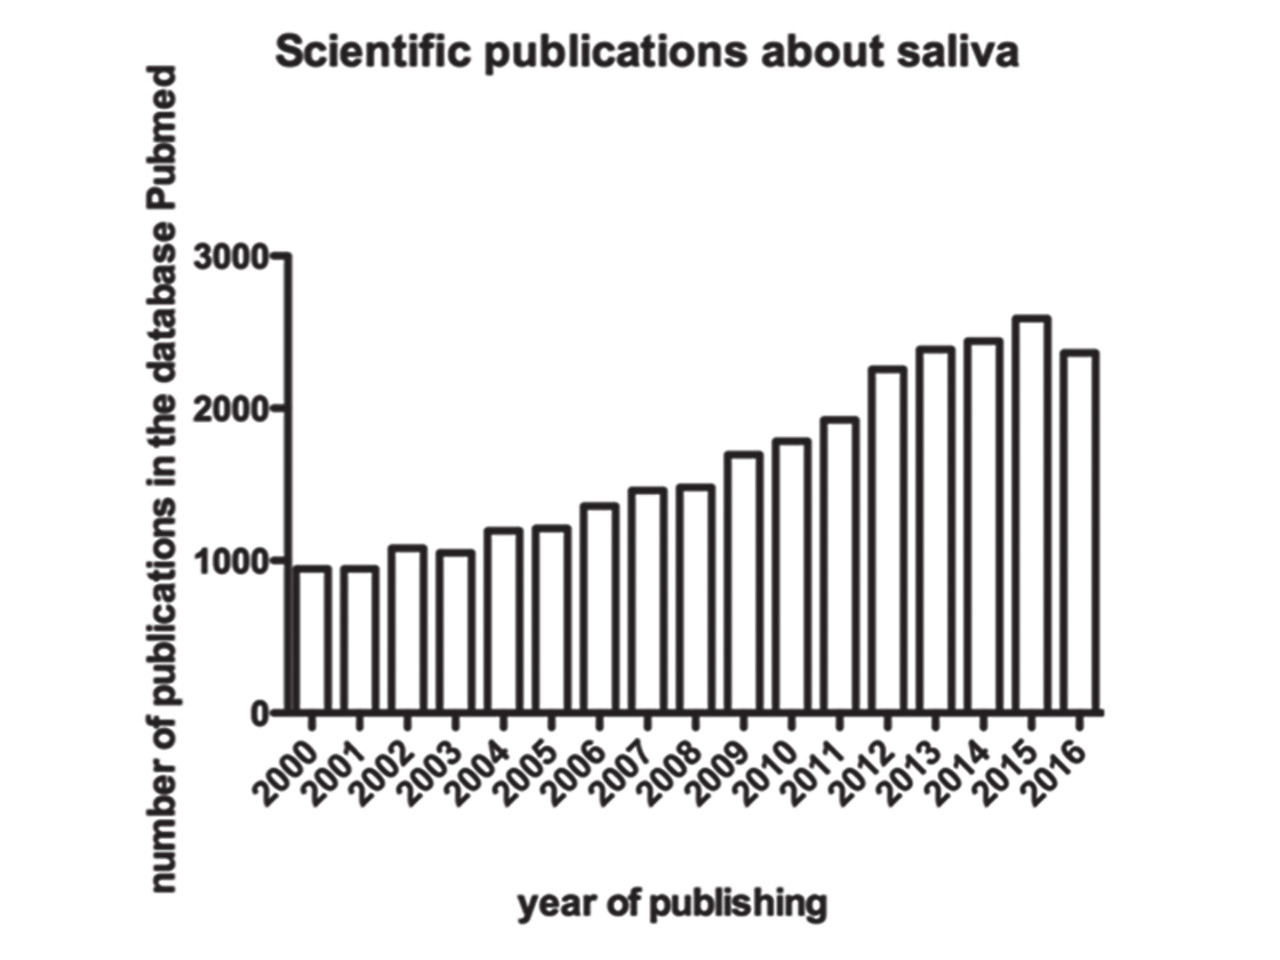 """Increased interest in salivary research since 2000. Data are obtained from the database PubMed when searching for a keyword """"saliva"""""""